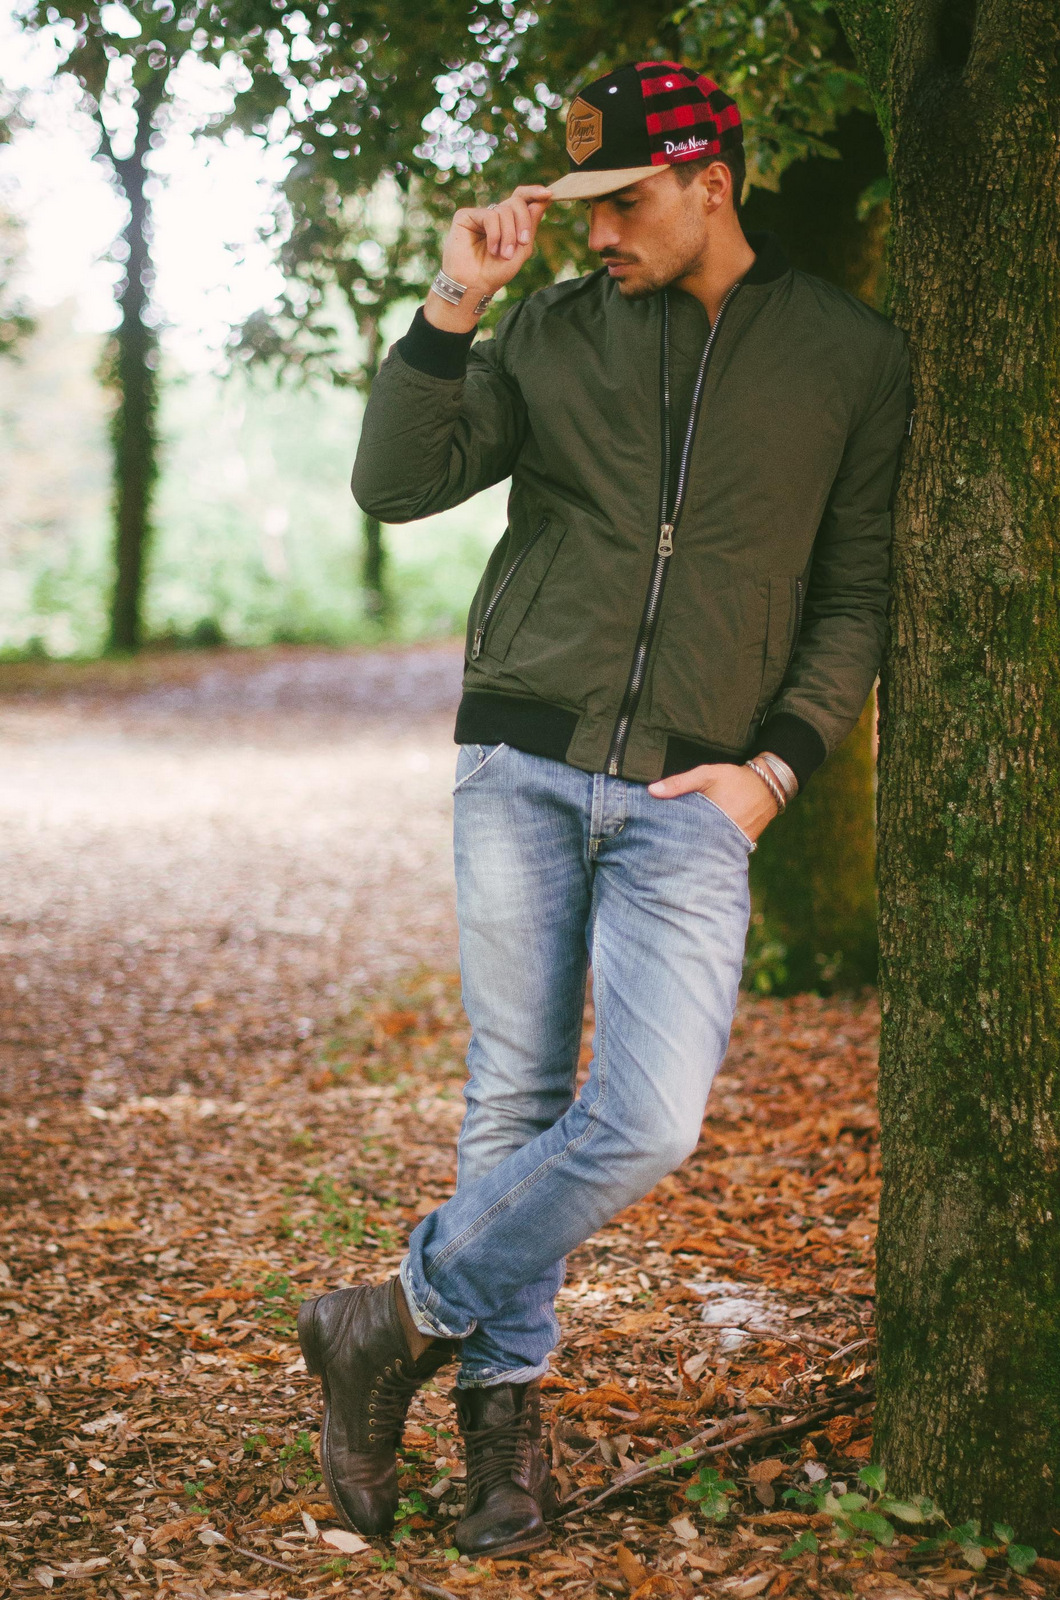 Green Jacket Outfit